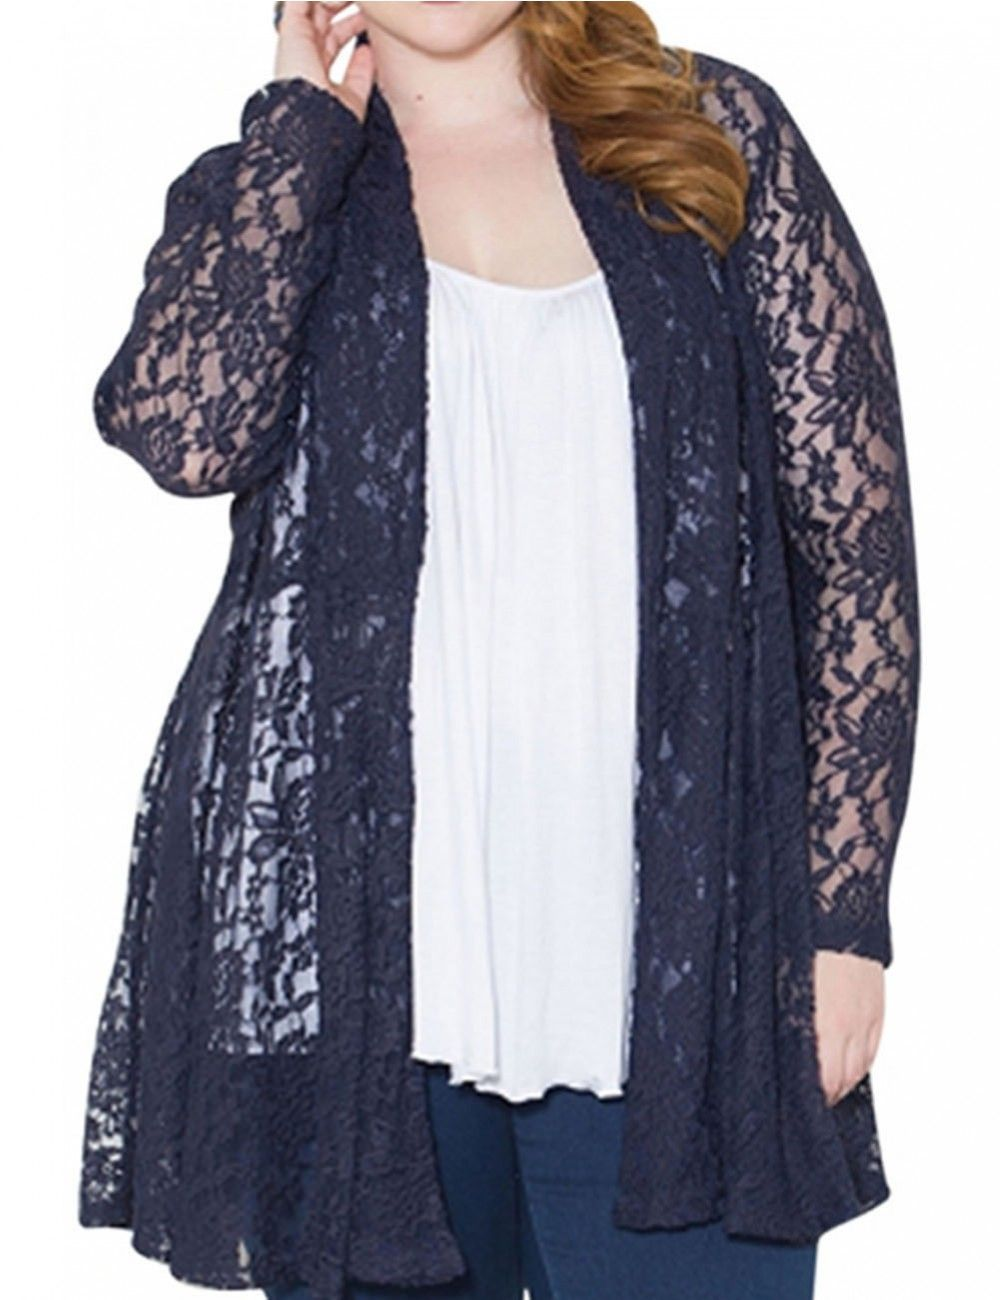 Women's Europe and America Style Loose Lace Cardigan Coat Navy ...